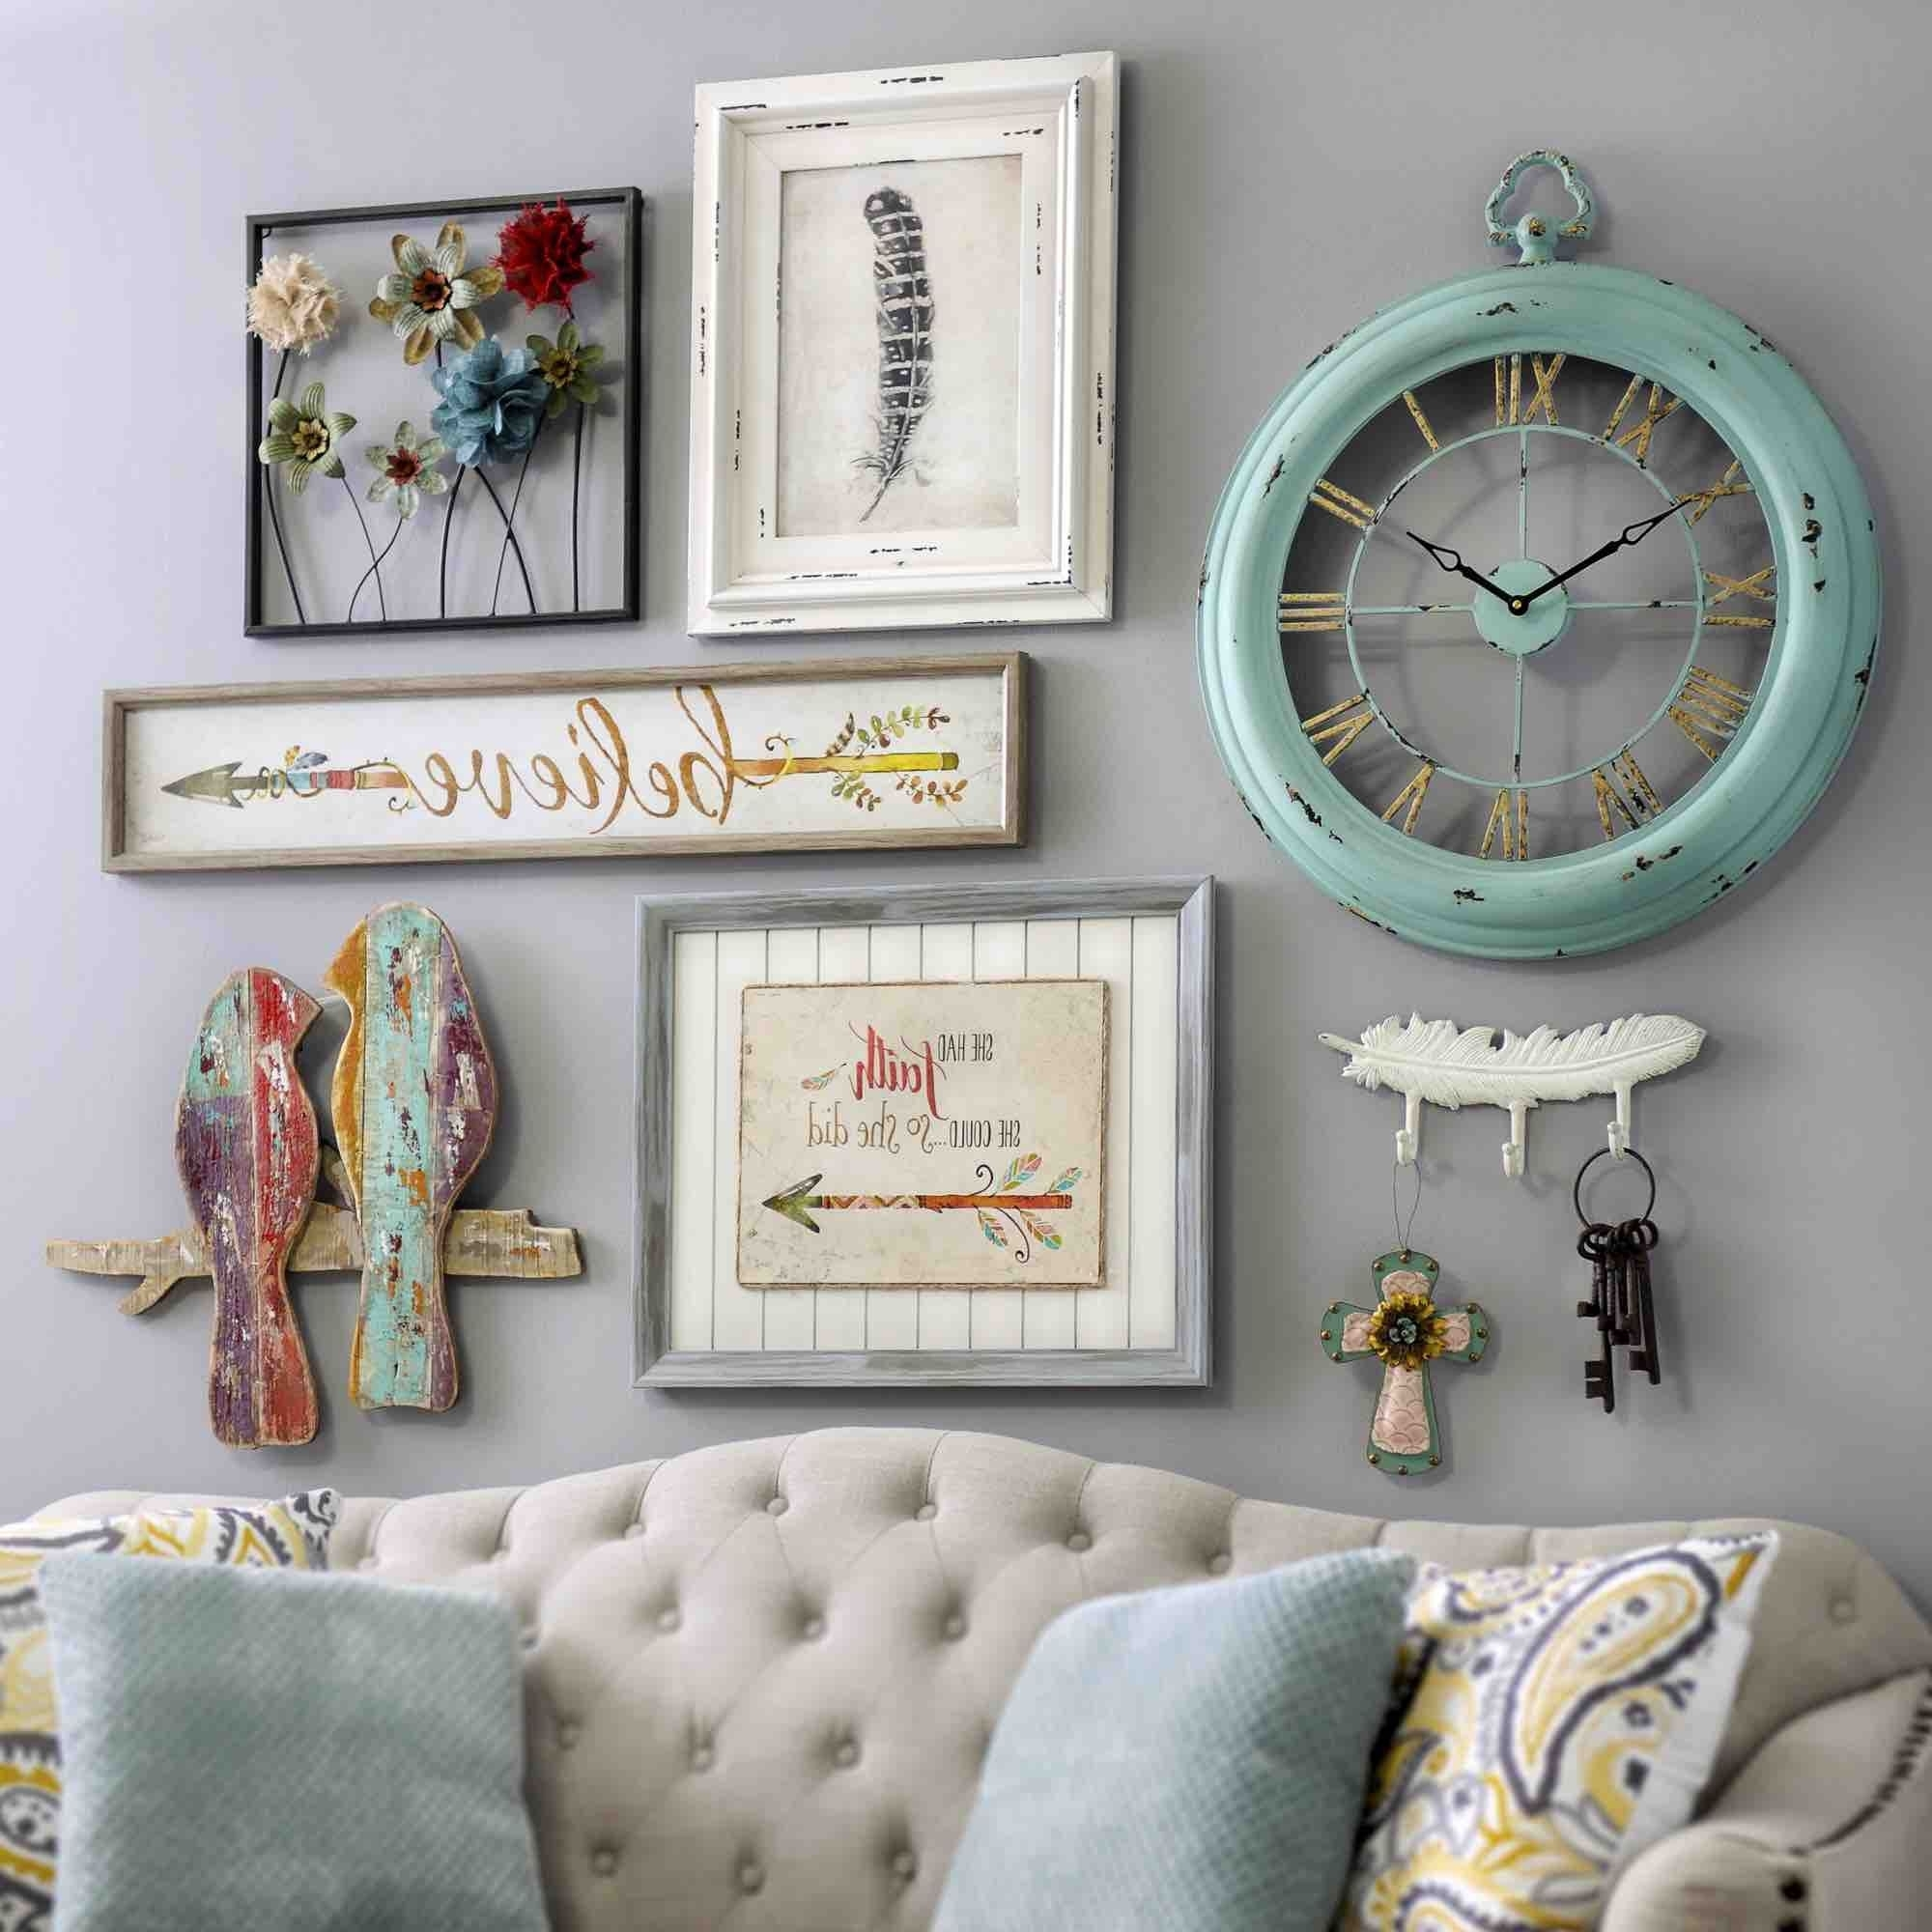 2018 Vintage Wall Accents For Bring A Shabby Chic Charm To Your Homeadding Pieces Of Wall (View 2 of 15)